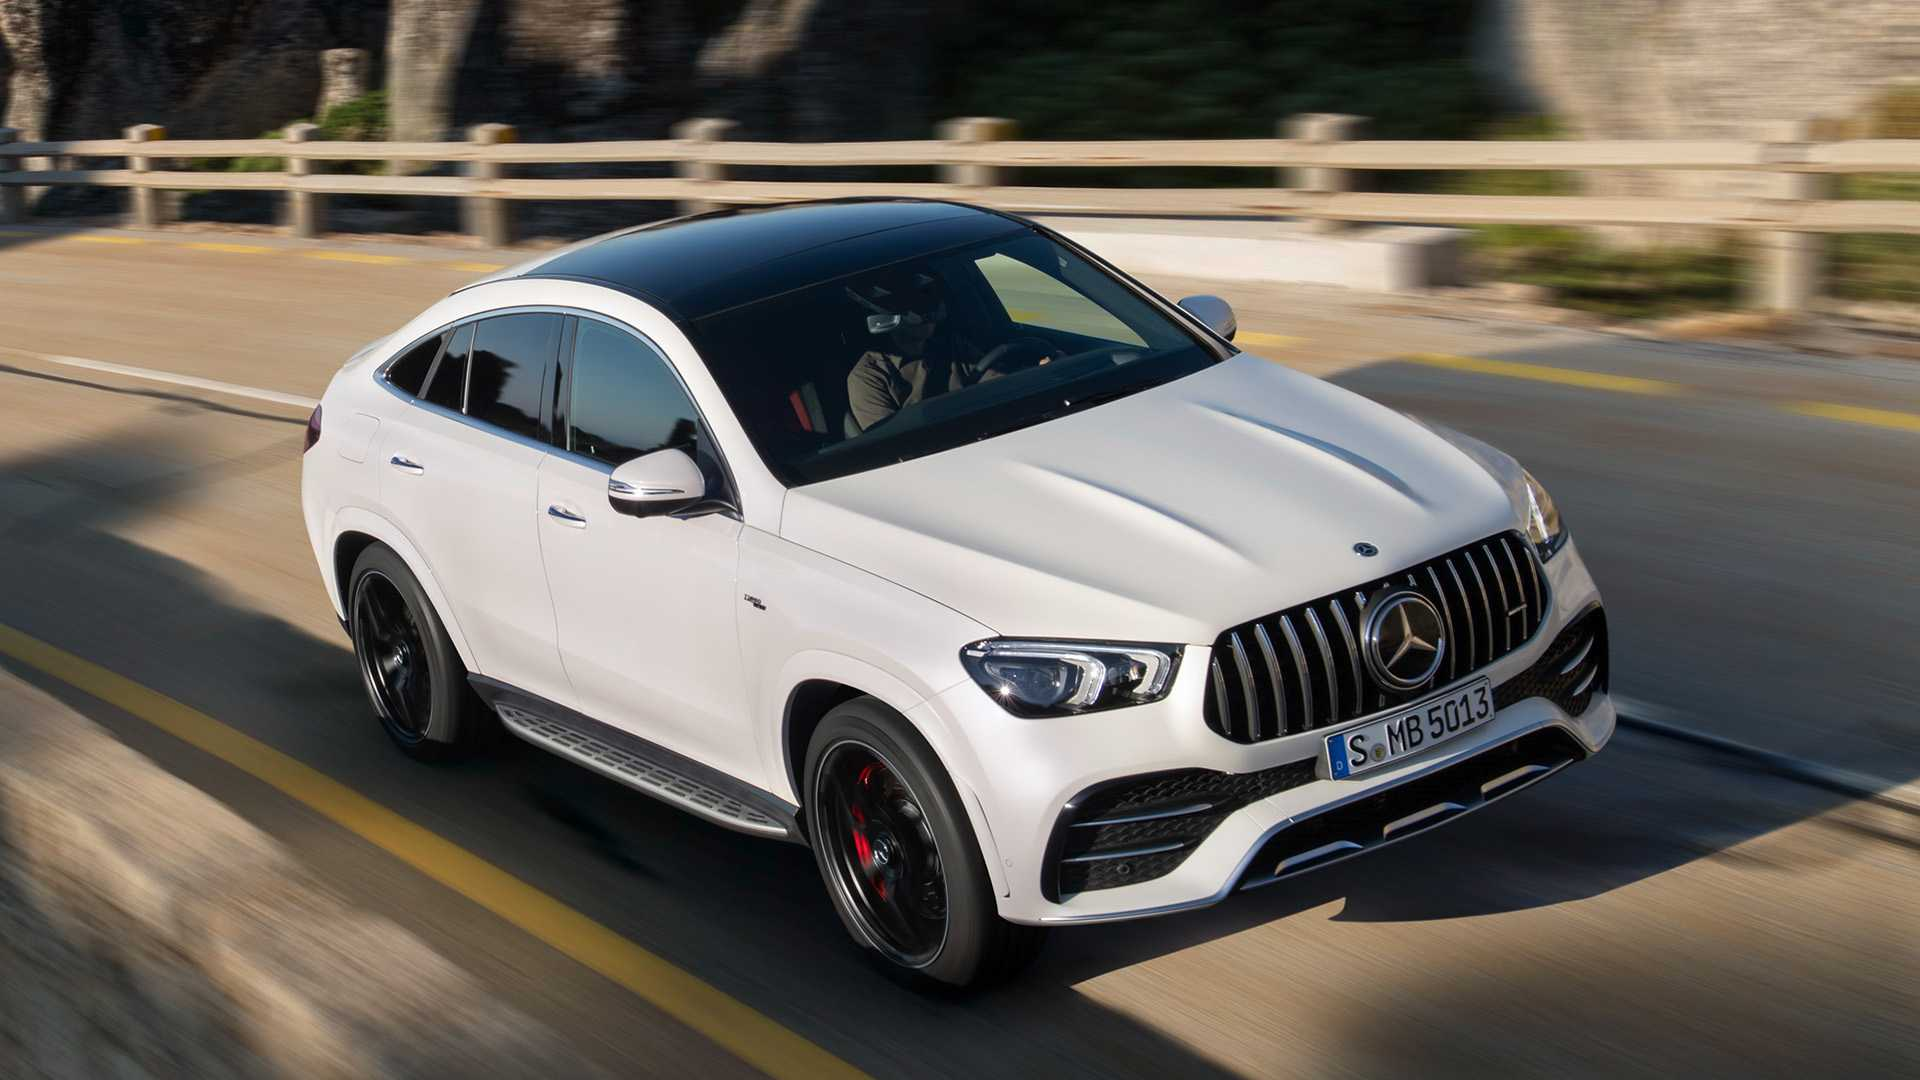 2021 Mercedes-AMG GLE 53 Coupe 4MATIC+ (Color: Designo Diamond White Bright) Front Wallpapers (1)